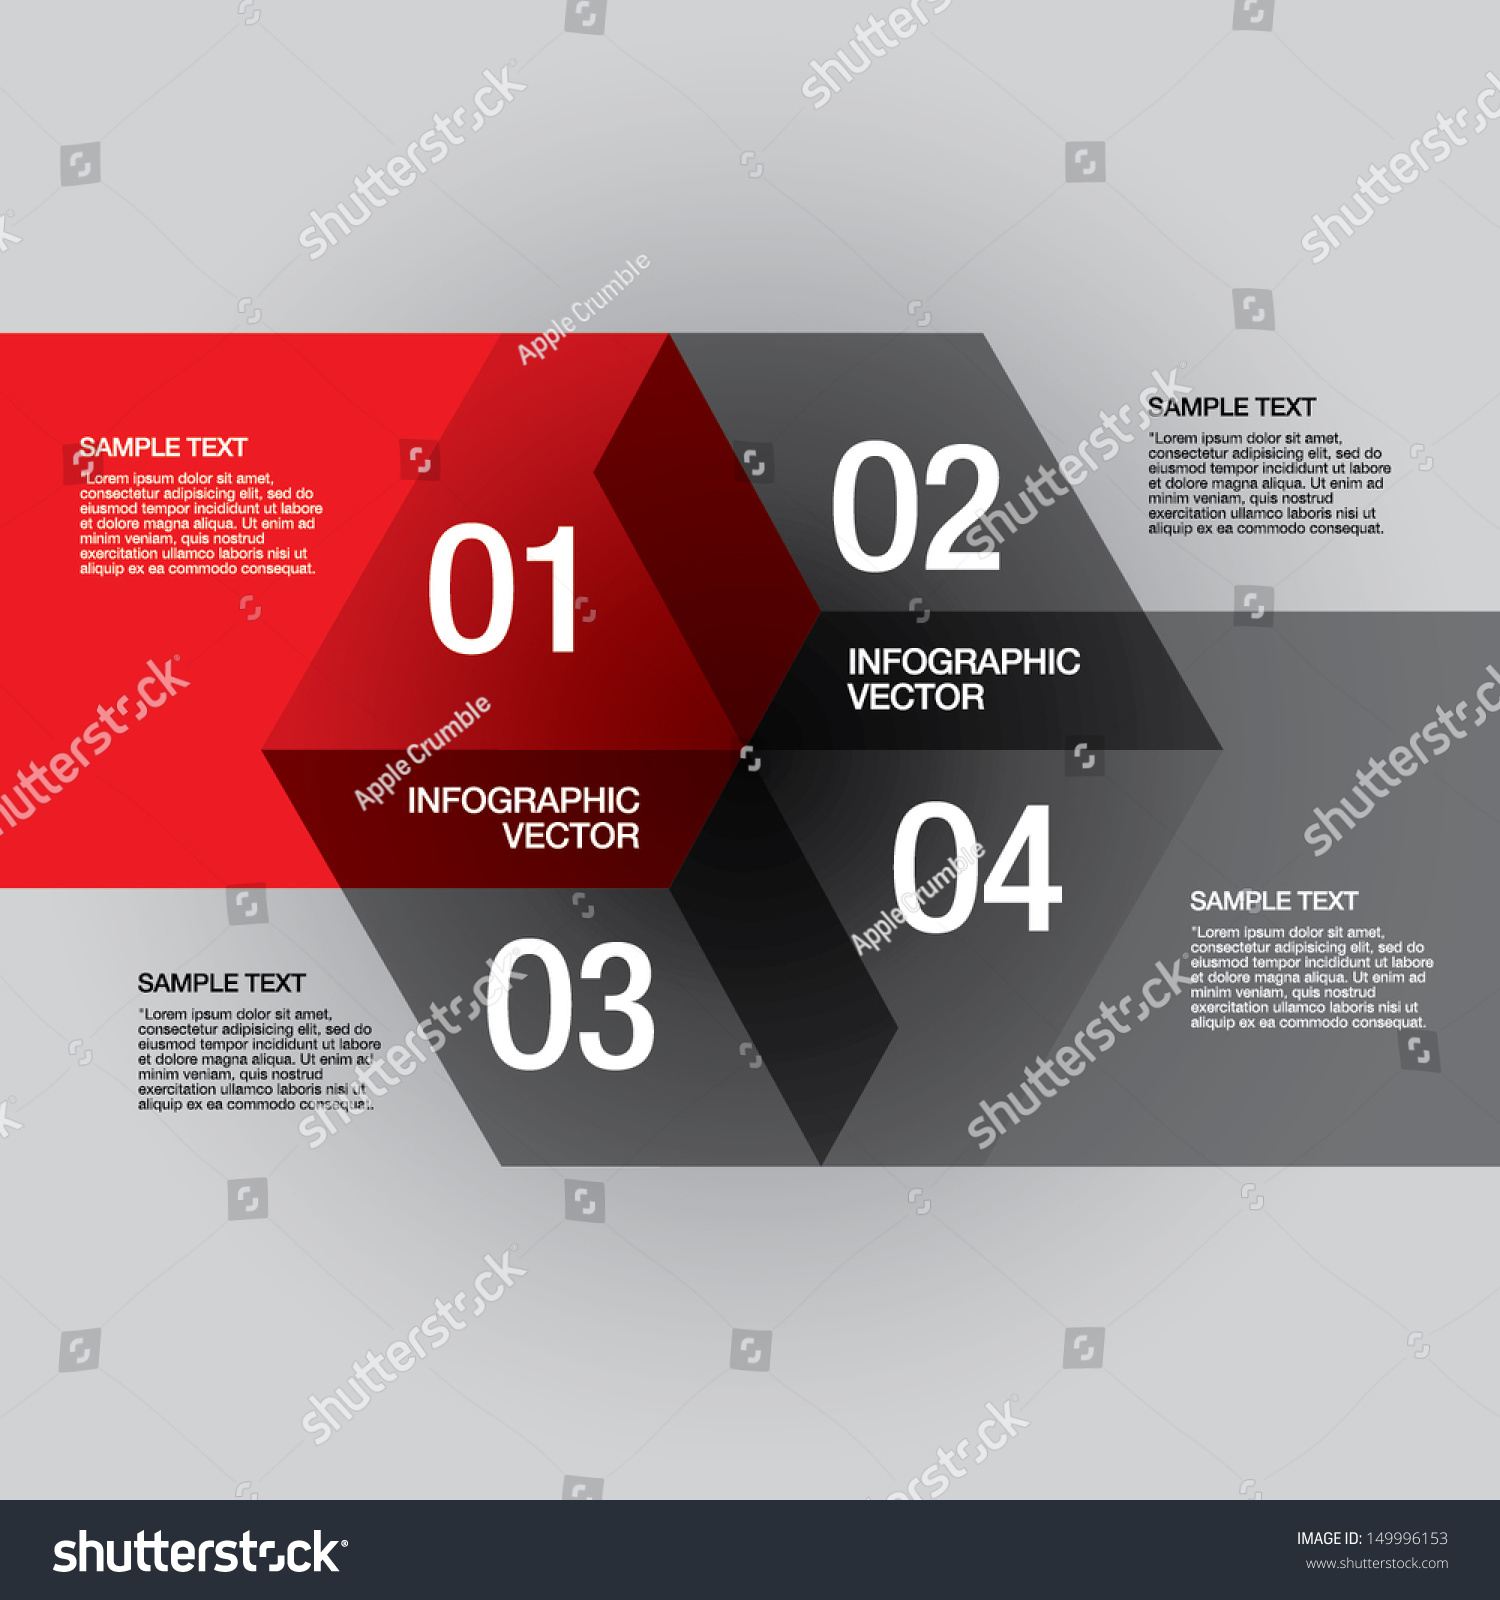 royalty-free vector presentation design template. #149996153 stock, Powerpoint templates